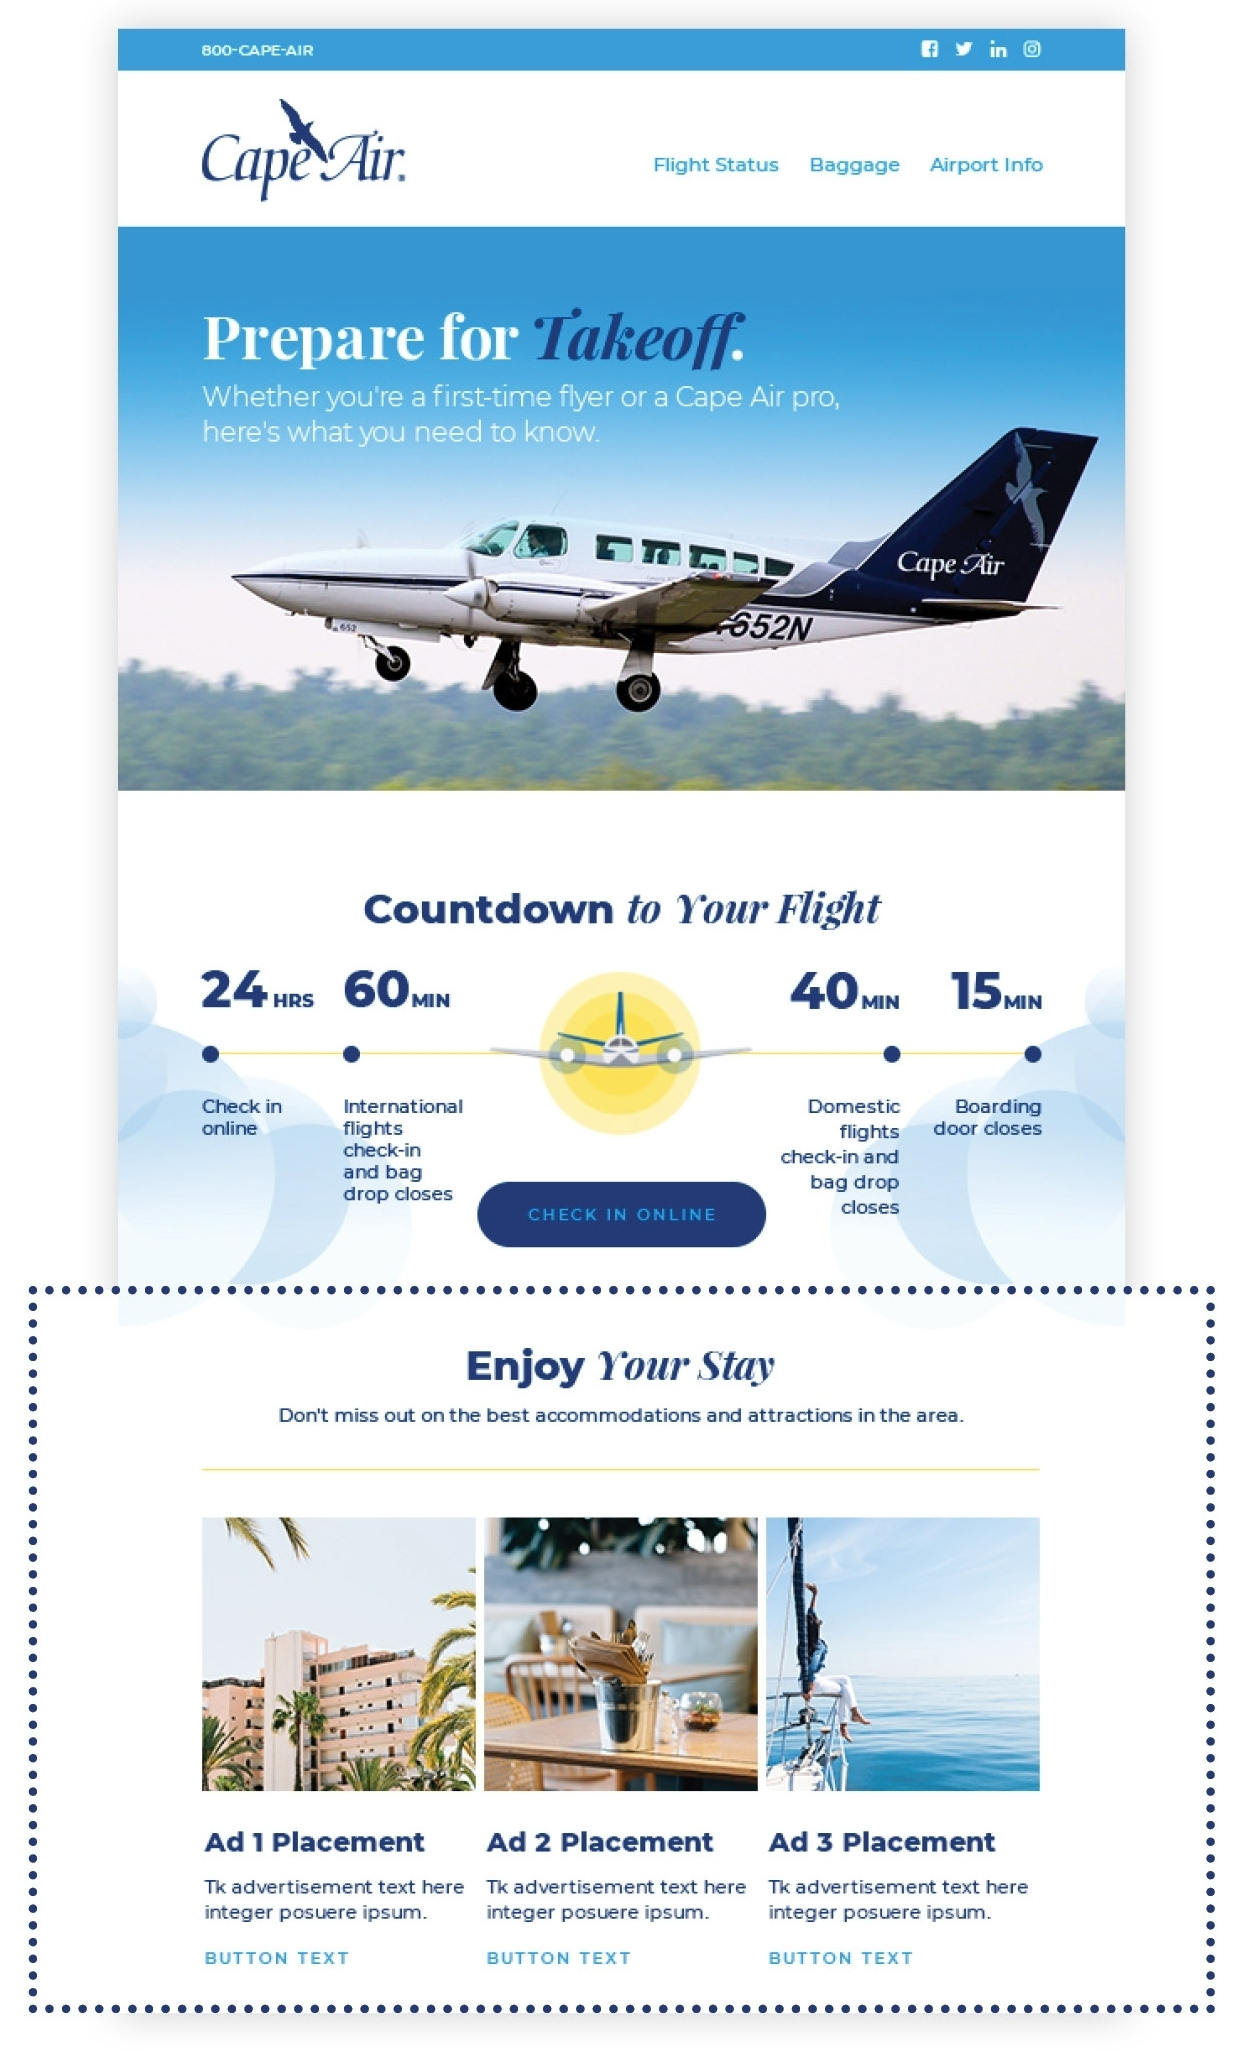 cape-air-ad-spec-postflight-preflight-email-graphic_01.jpg